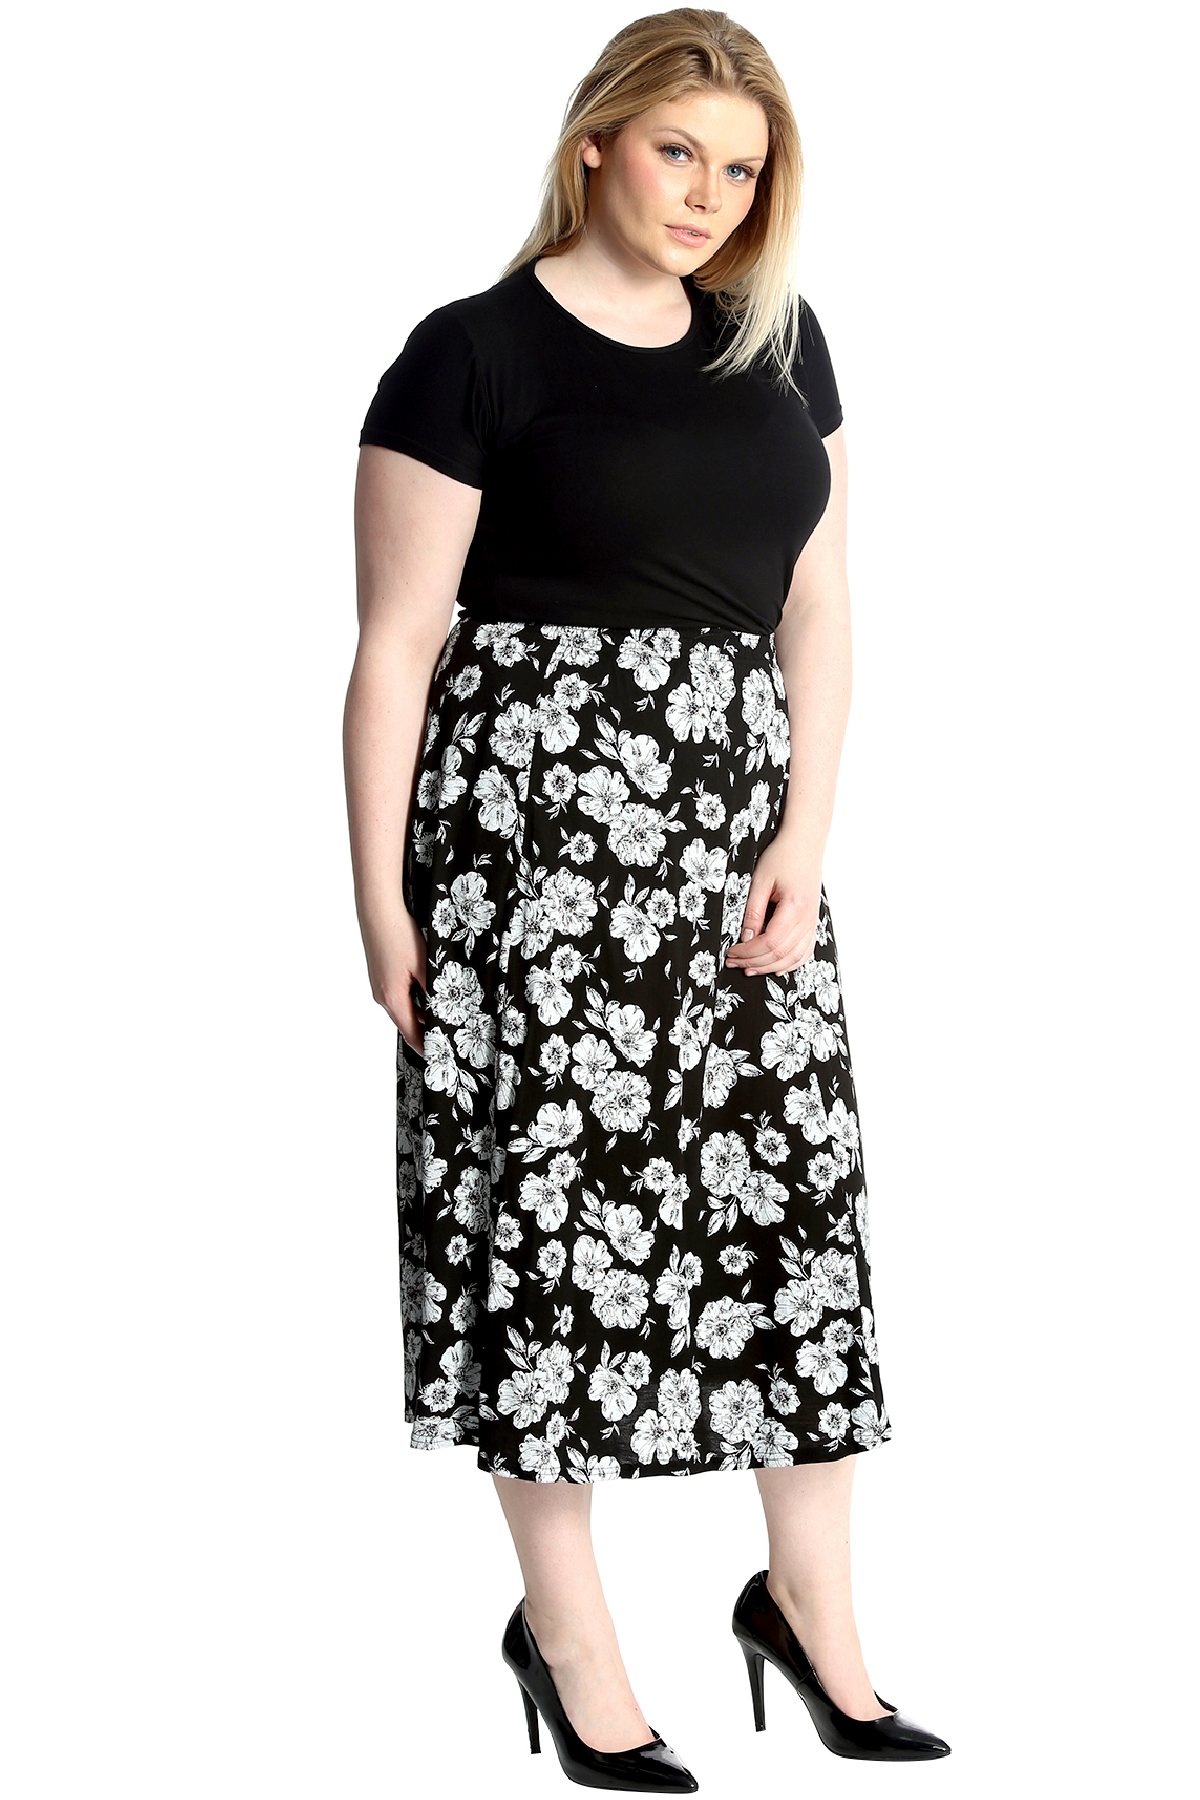 new ladies skirt plus size womens floral print a line maxi. Black Bedroom Furniture Sets. Home Design Ideas